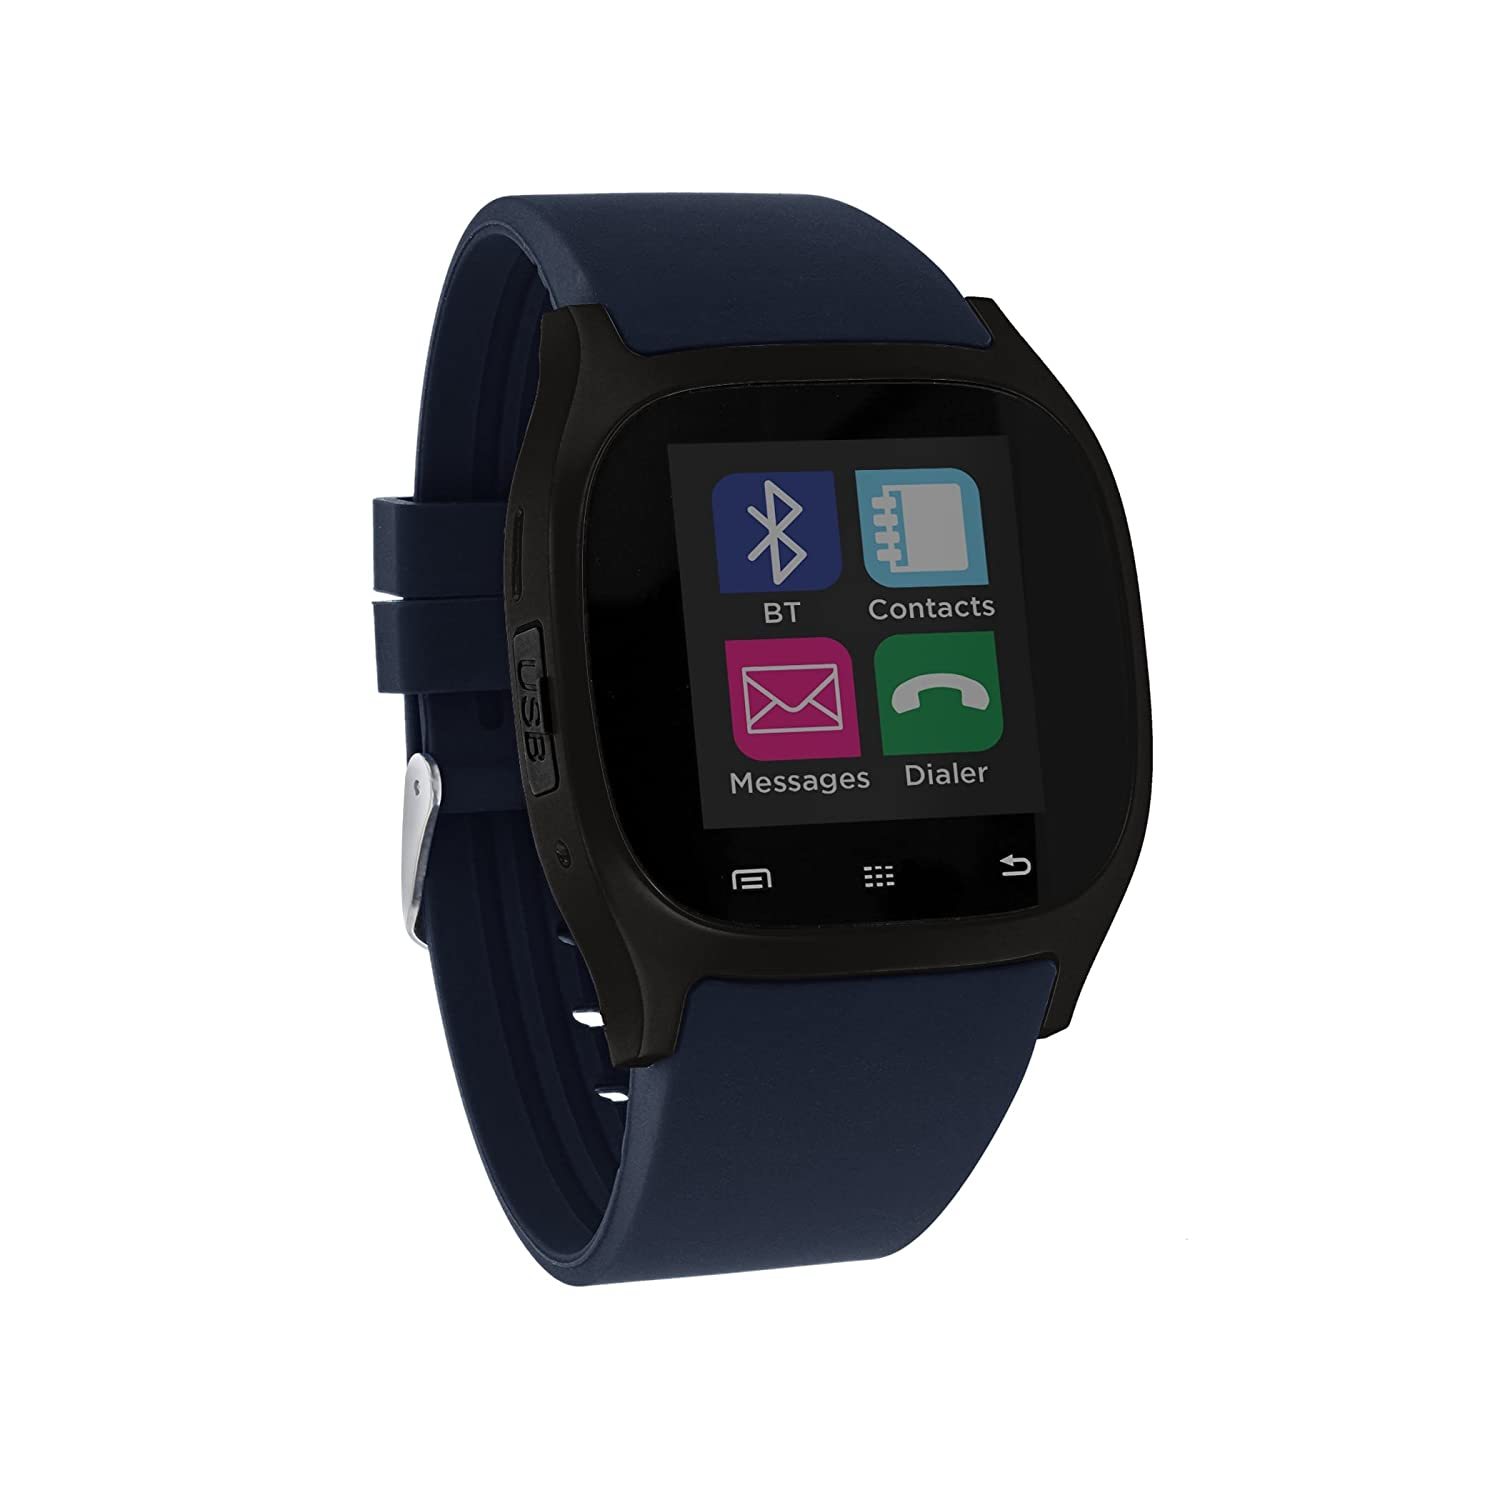 Smart Watch I-Touch Screen Bluetooth with Pedometer Analysis Sleep Monitoring for Samsung Galaxy Android Apple iPhone iOS LG Google Nexus Smartphone ...